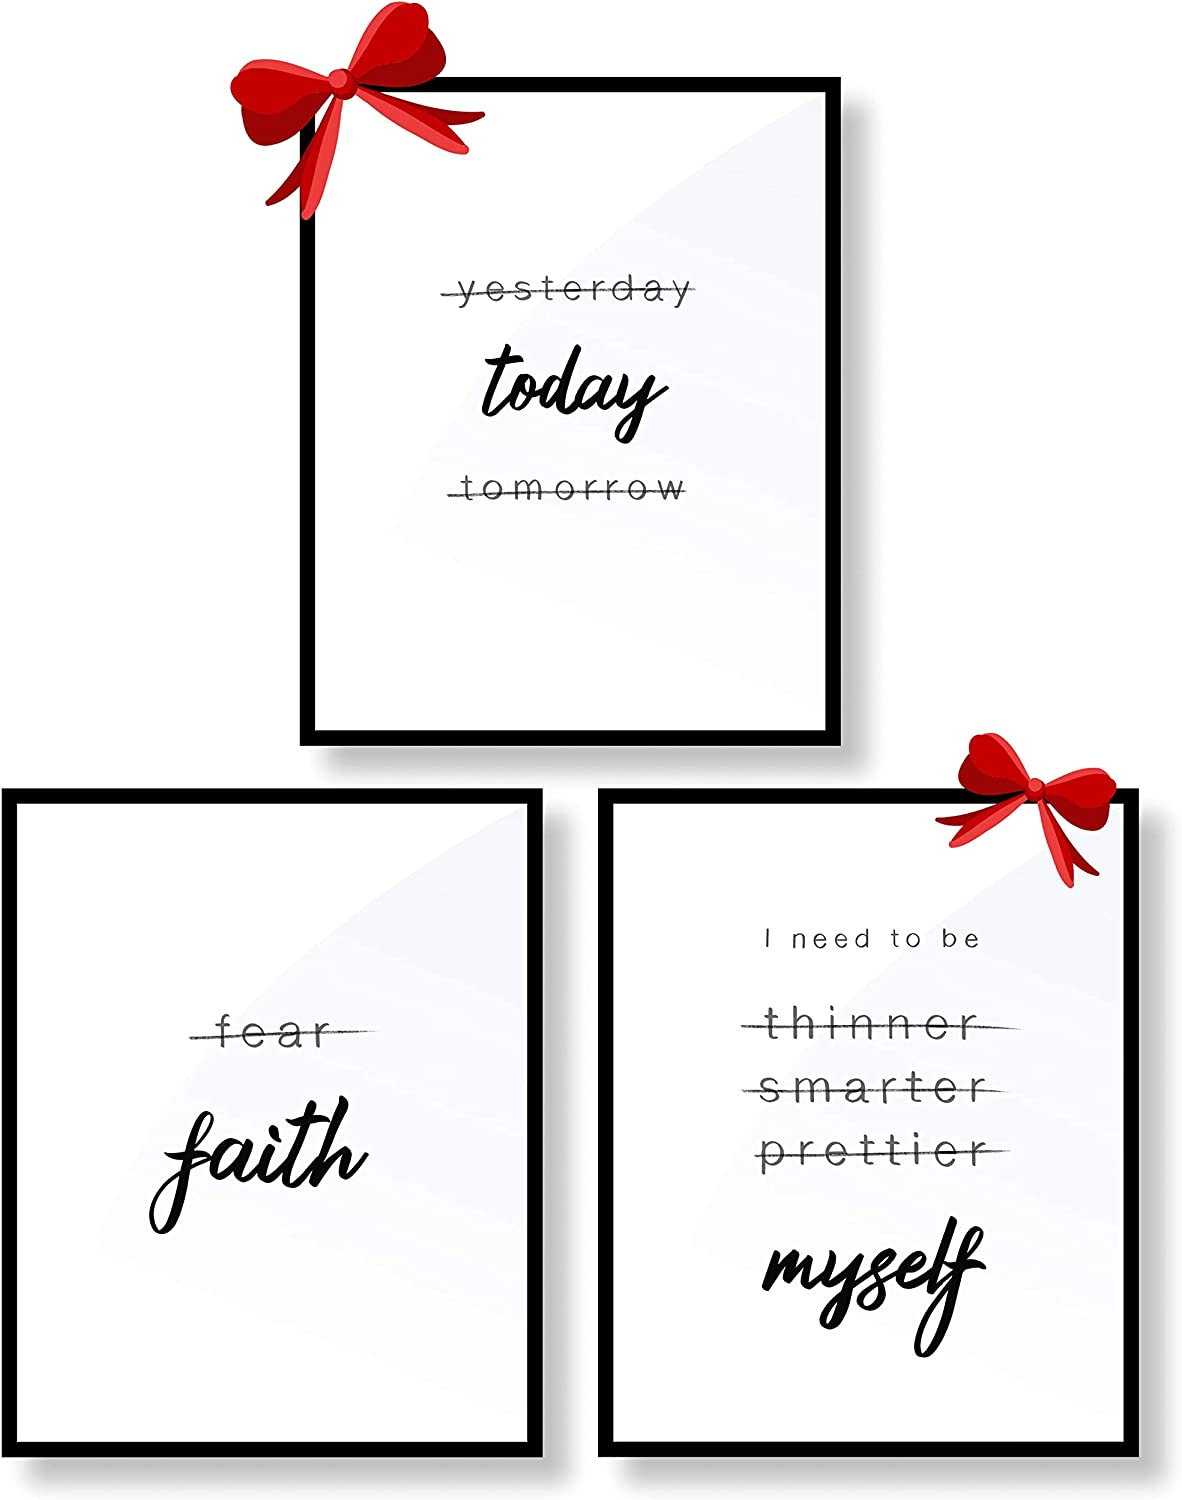 "InsightOut Framed Wall Art Decor | Inspirational Bedroom Poster | Positive Quotes | Minimalist, Black /White Prints | Simple Word Signs | Home Office/Kitchen/Bathroom (8 x 10"", Set of 3)"